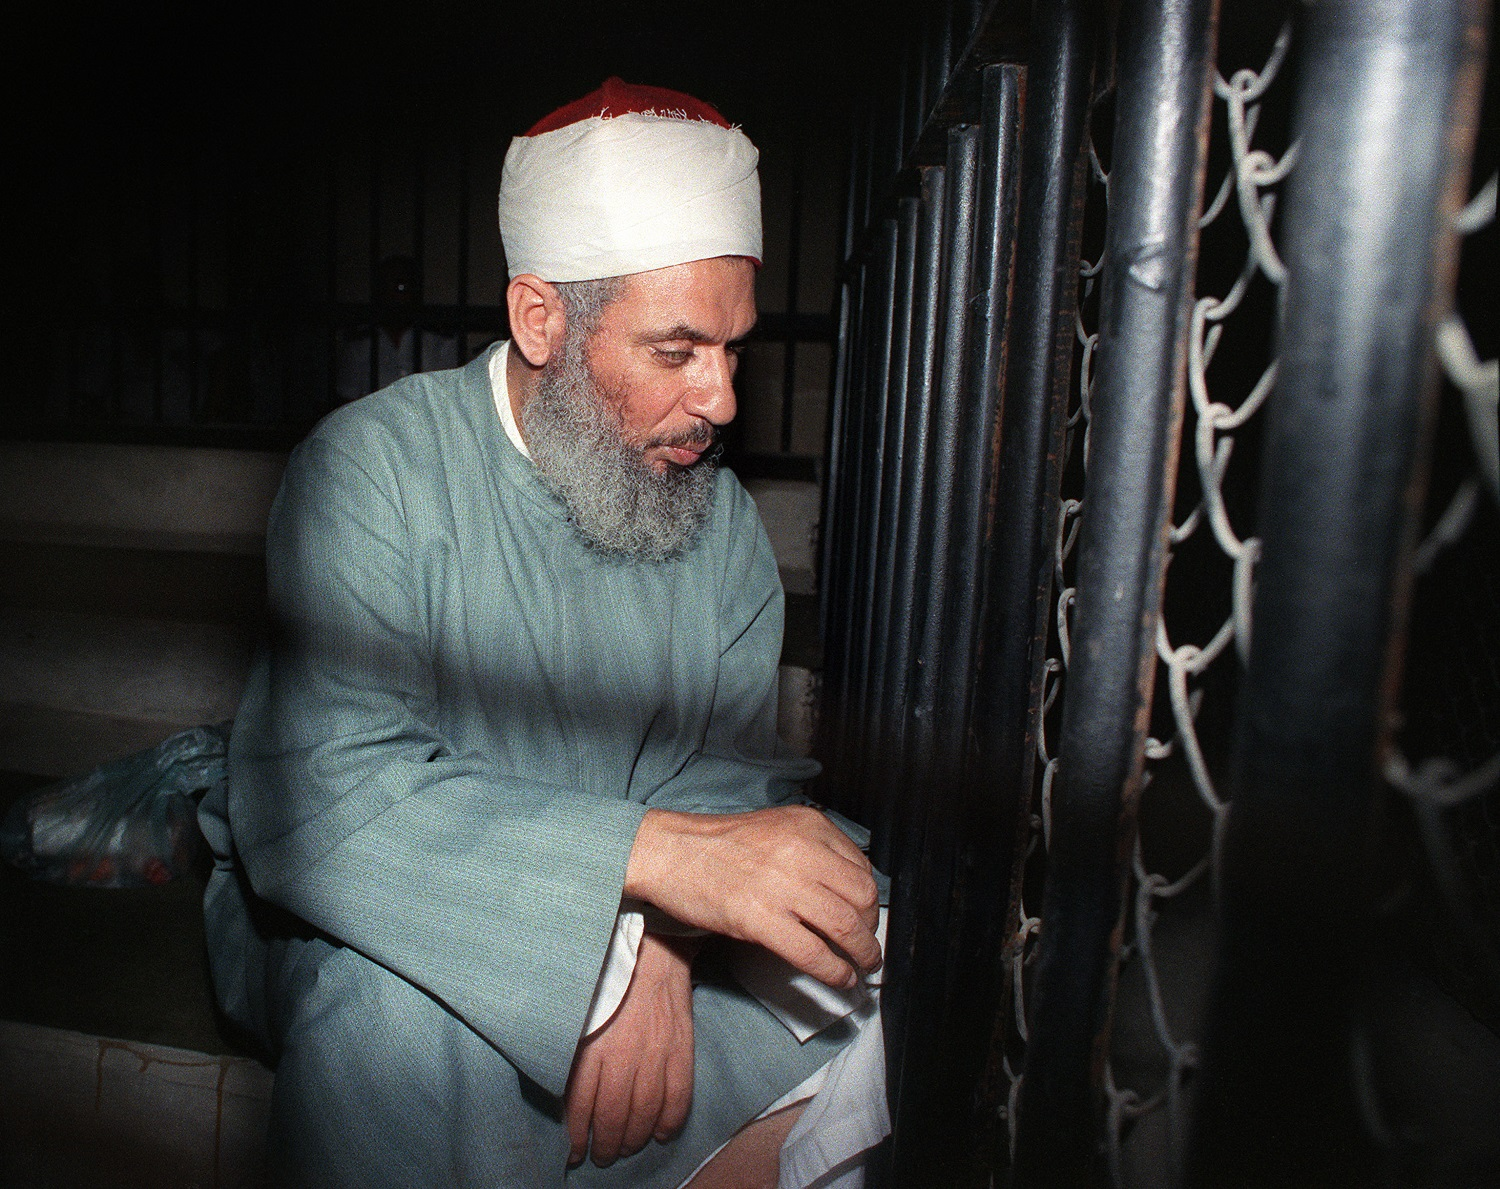 Blind Sheikh Omar Abdel Rahman sits and prays inside an iron cage at the opening of court session, 06 August 1989 in Cairo. Abdel-Rahman, spiritual leader of Egypt's main armed group the Moslem fundamentalist Jamaa Islamiyya, was jailed for life in January 1996 for his role in terrorist attacks, including blowing up the World Trade Center in New York in February 1993 and an assassination bid against Egyptian President Mubarak. / AFP PHOTO / MIKE NELSON